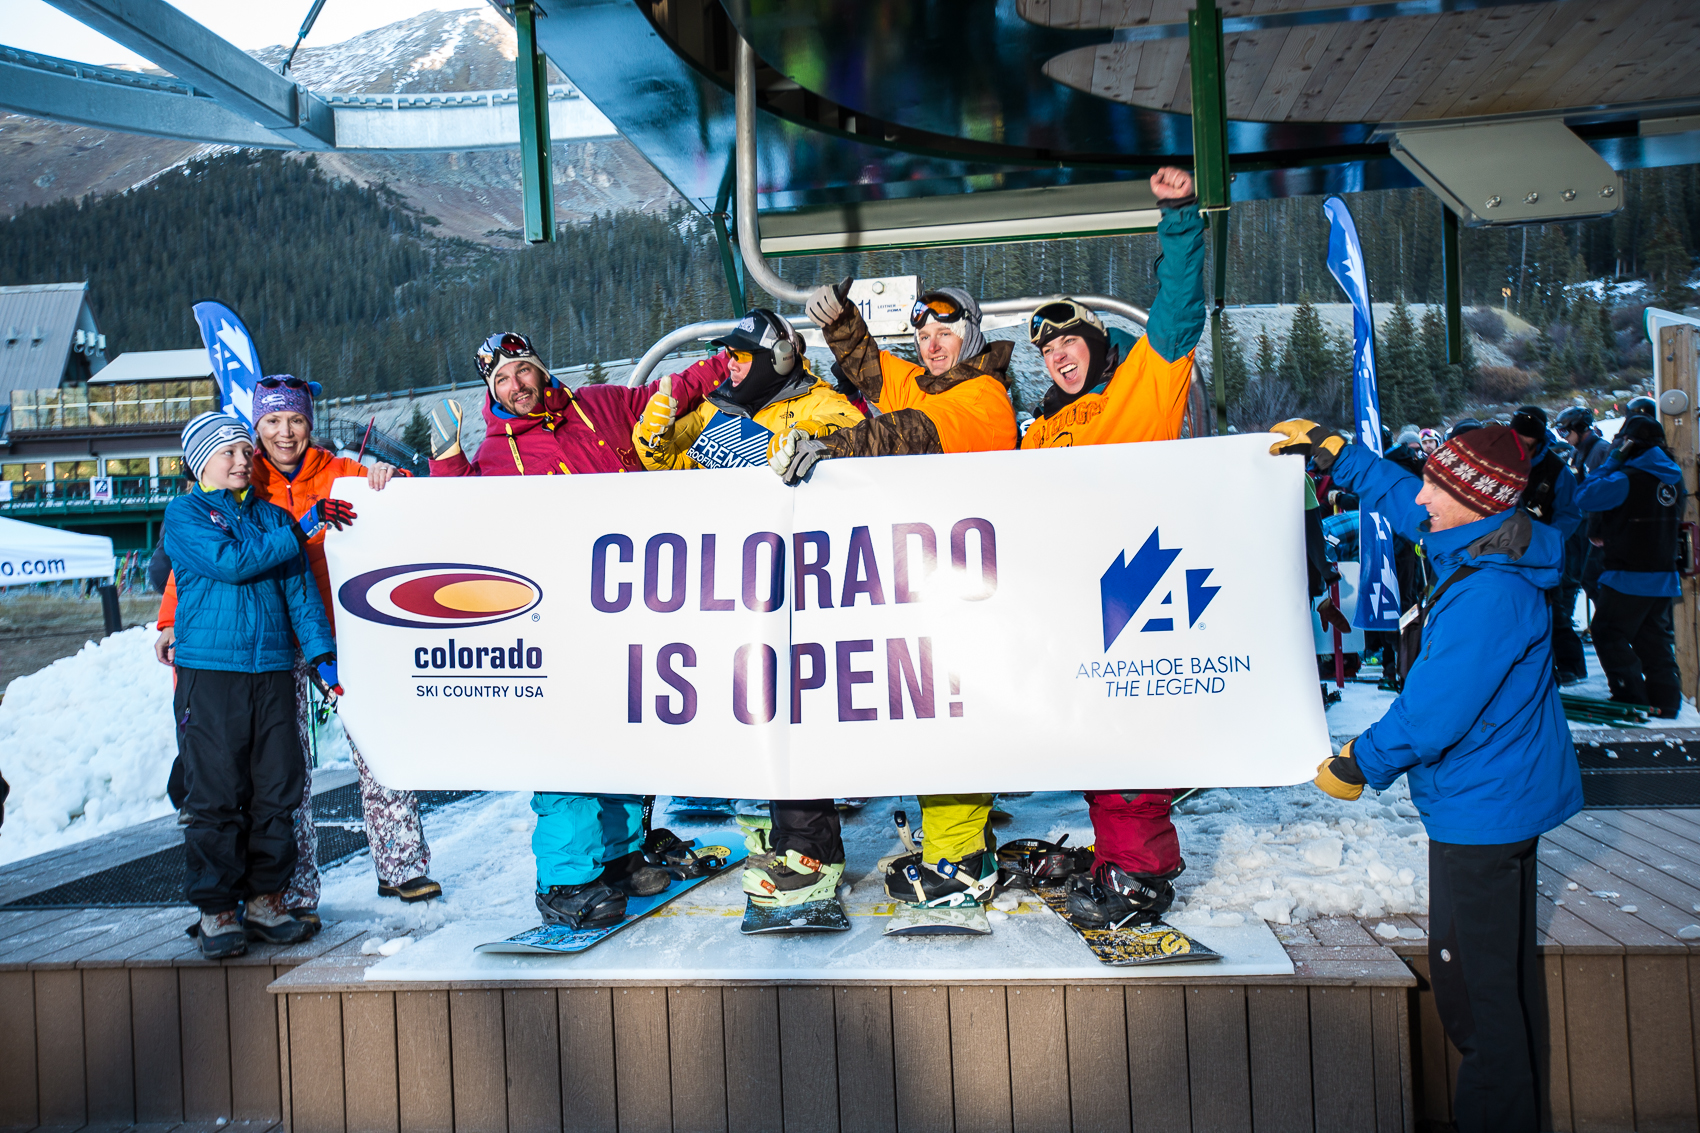 7 Things You See at A-Basin on Opening Weekend | Teton Gravity Research